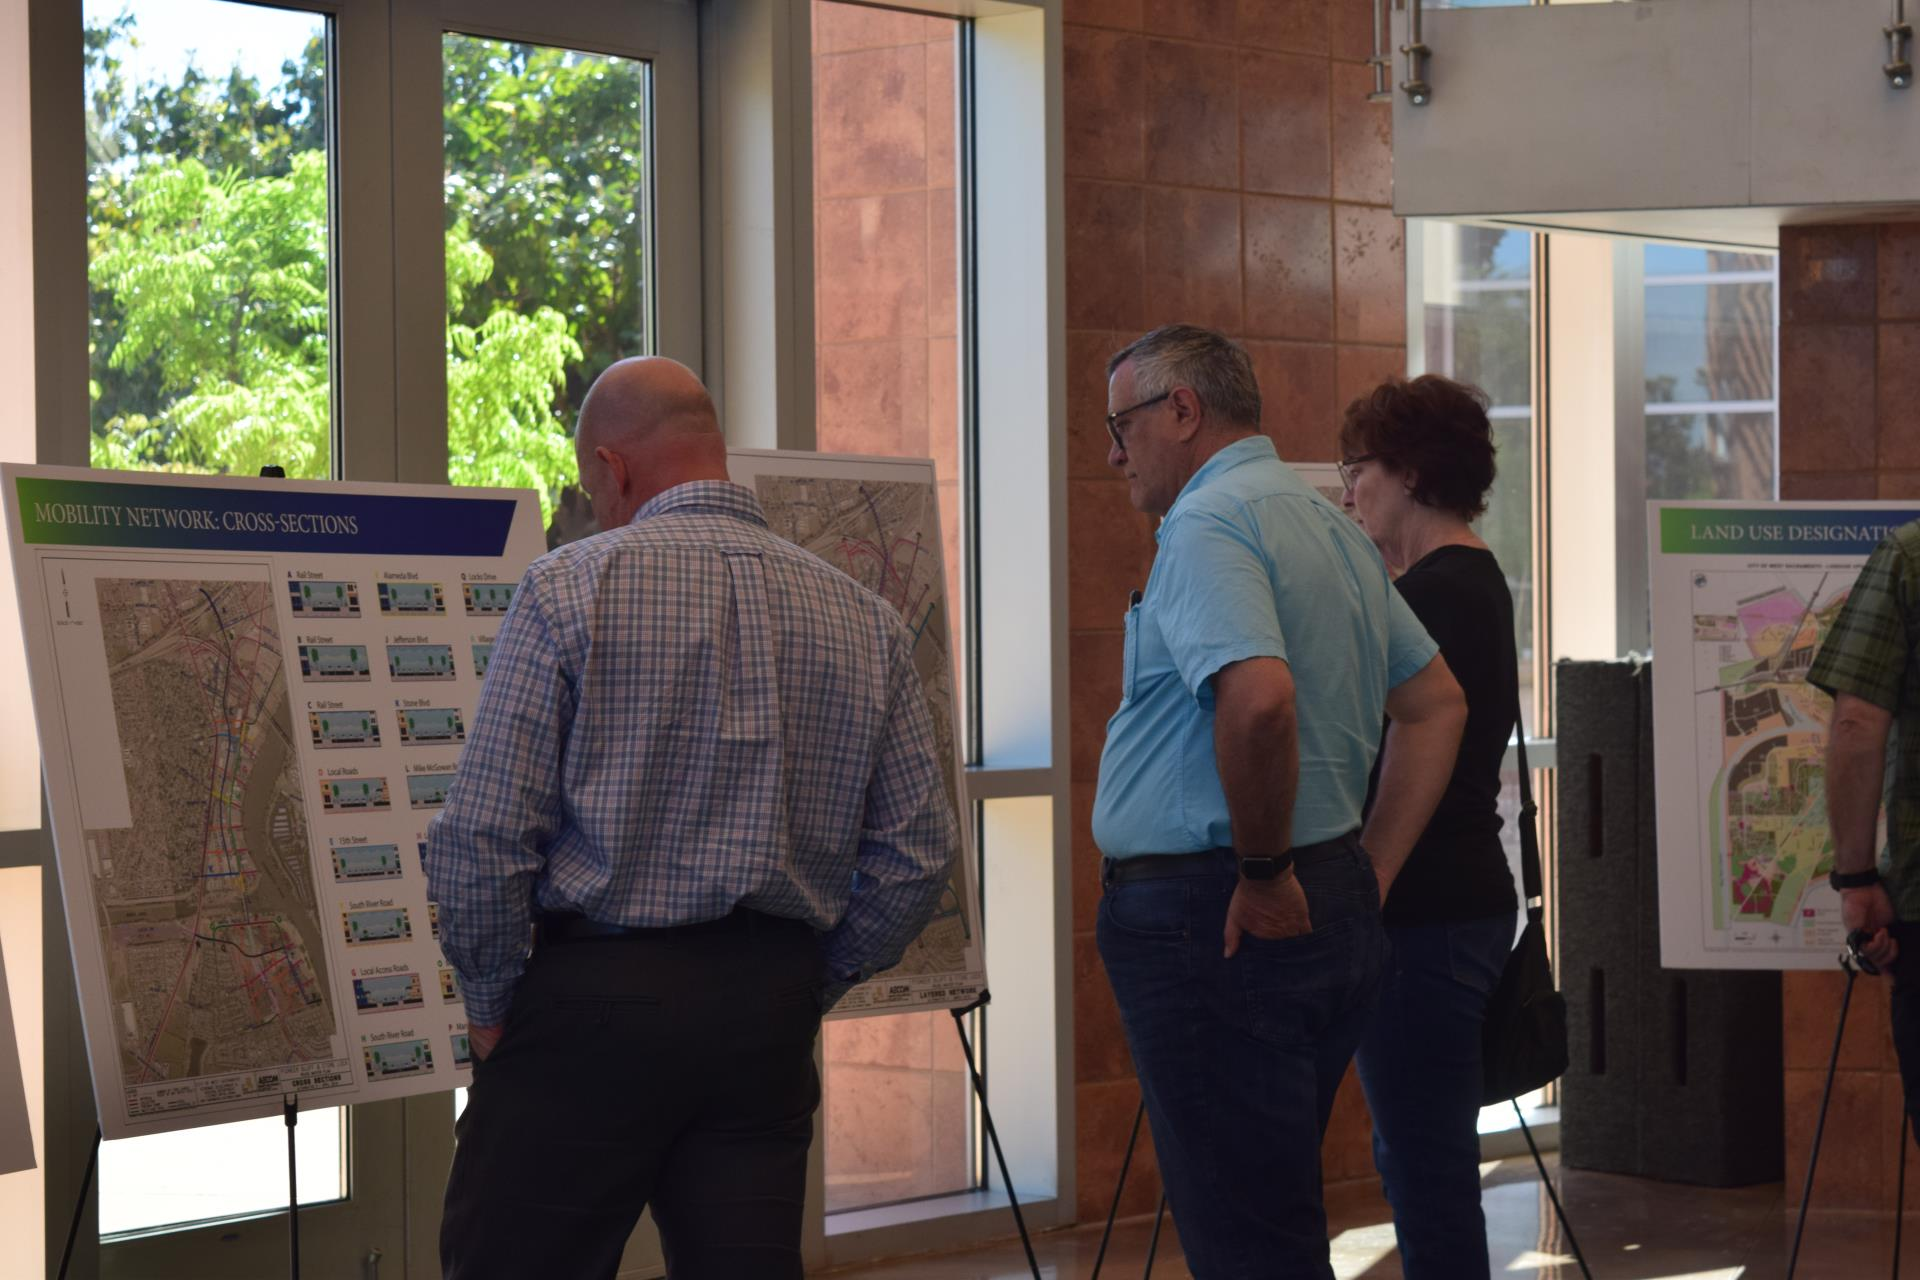 pioneer bluff open house residents read poster boards